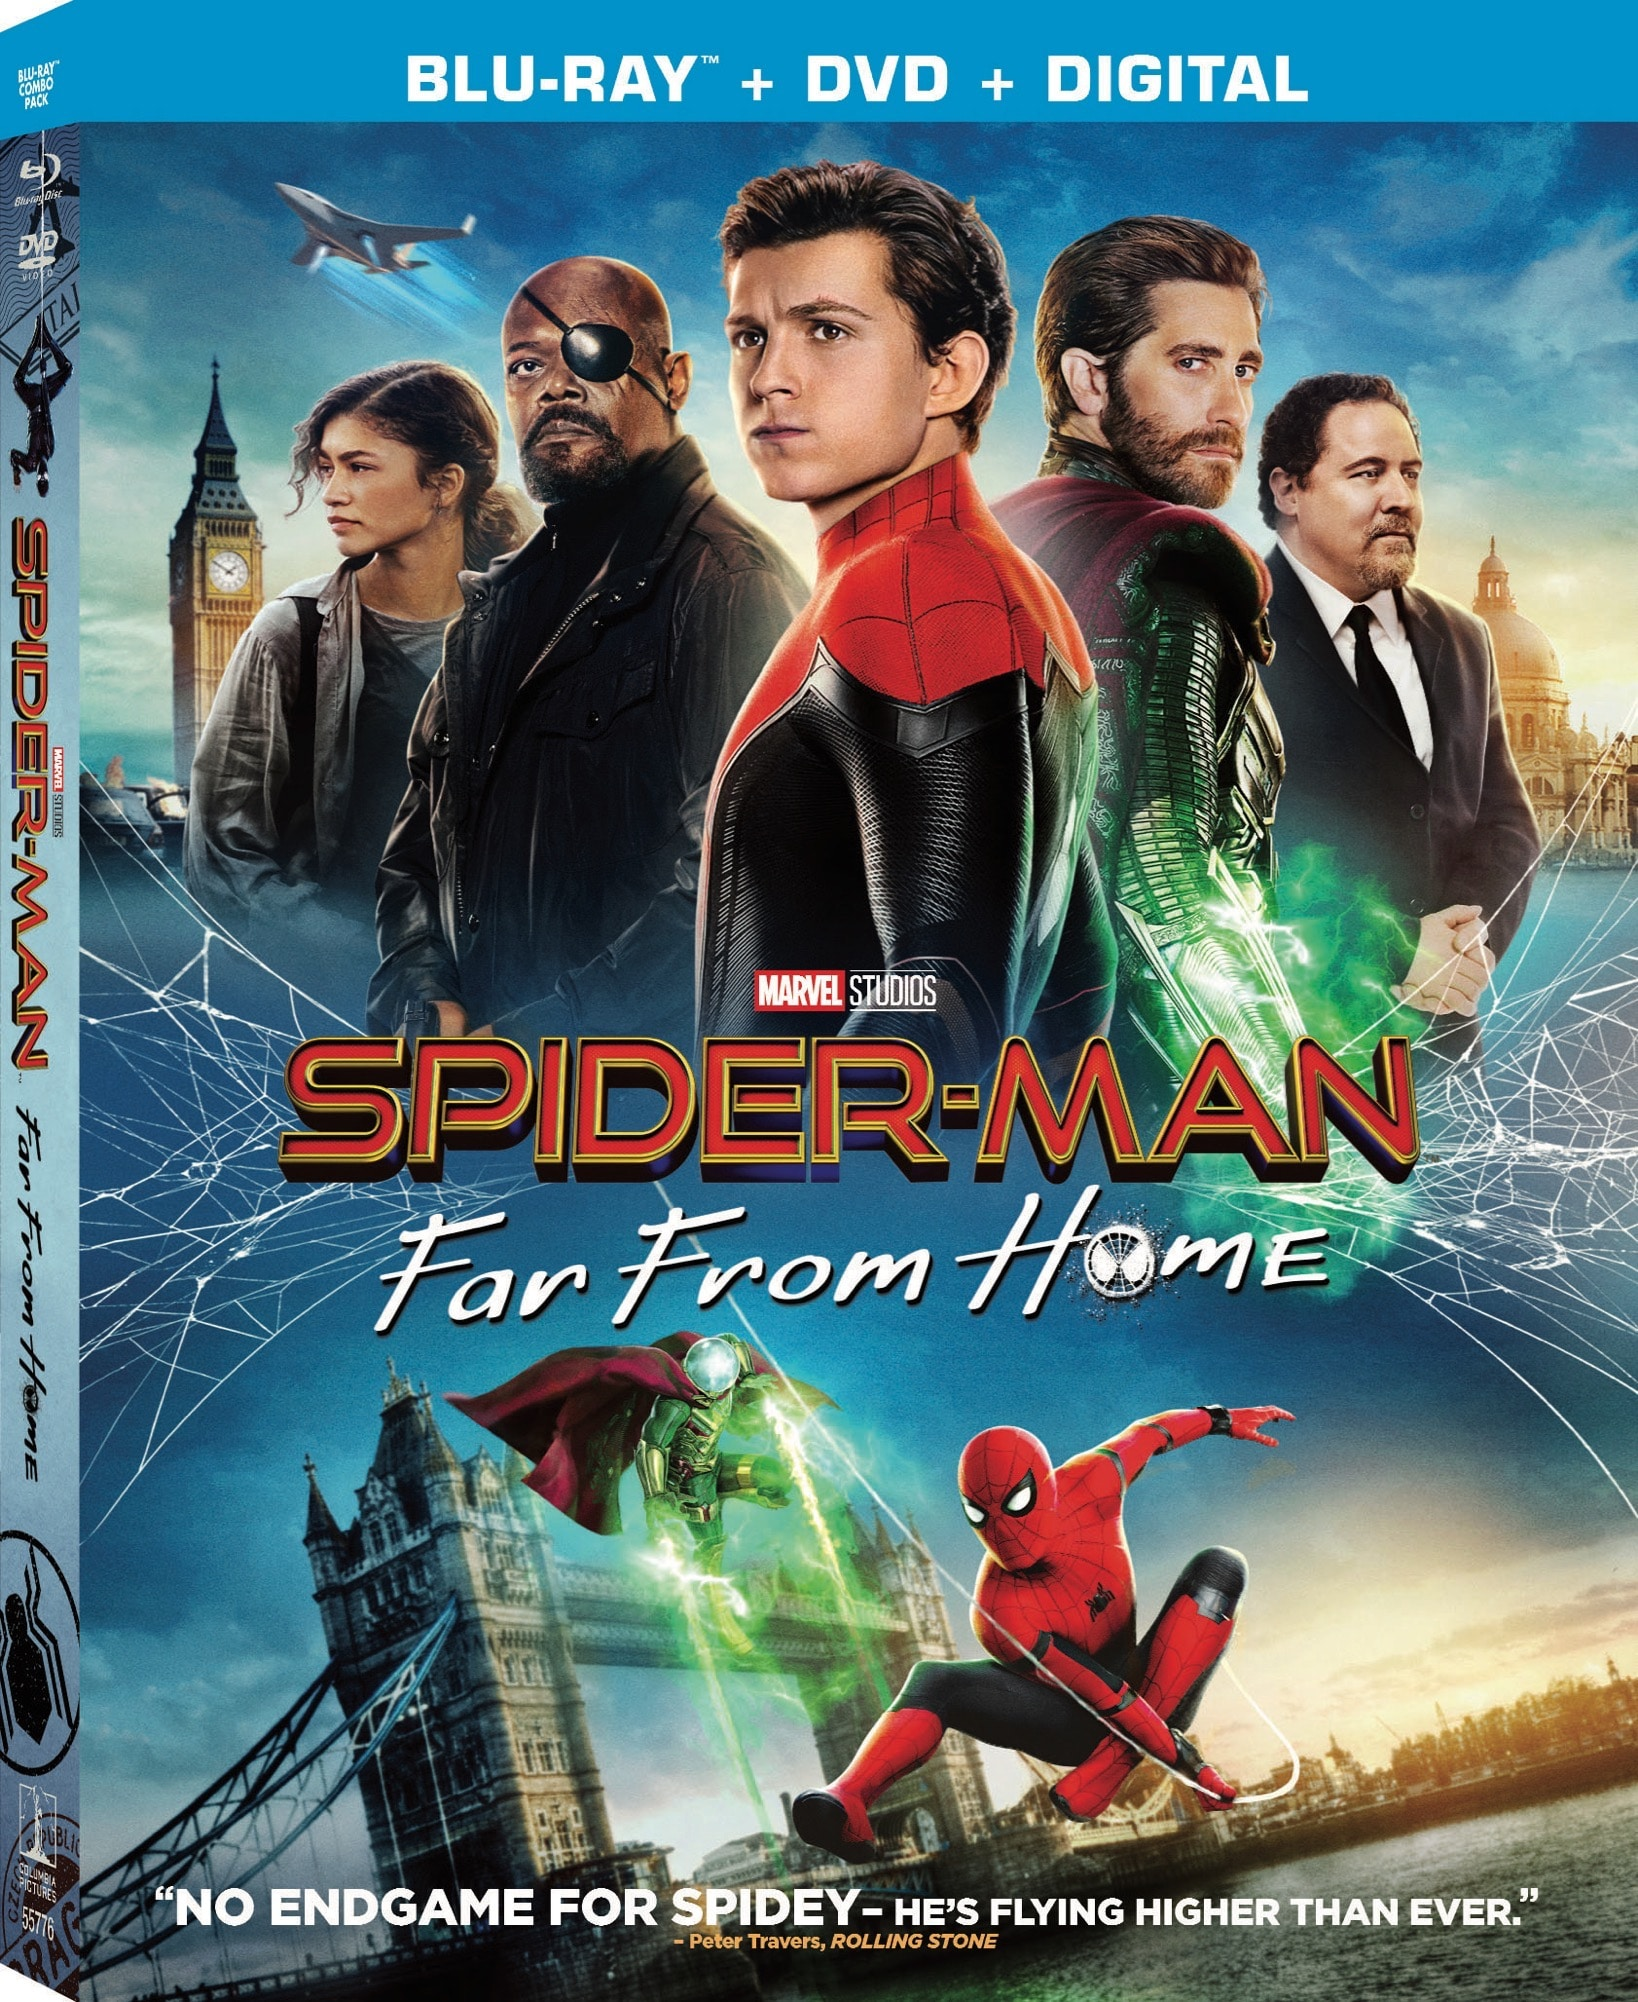 Spiderman FarFromHome 2019 BD DVD OUTERSLEEVE FrontLeft V2